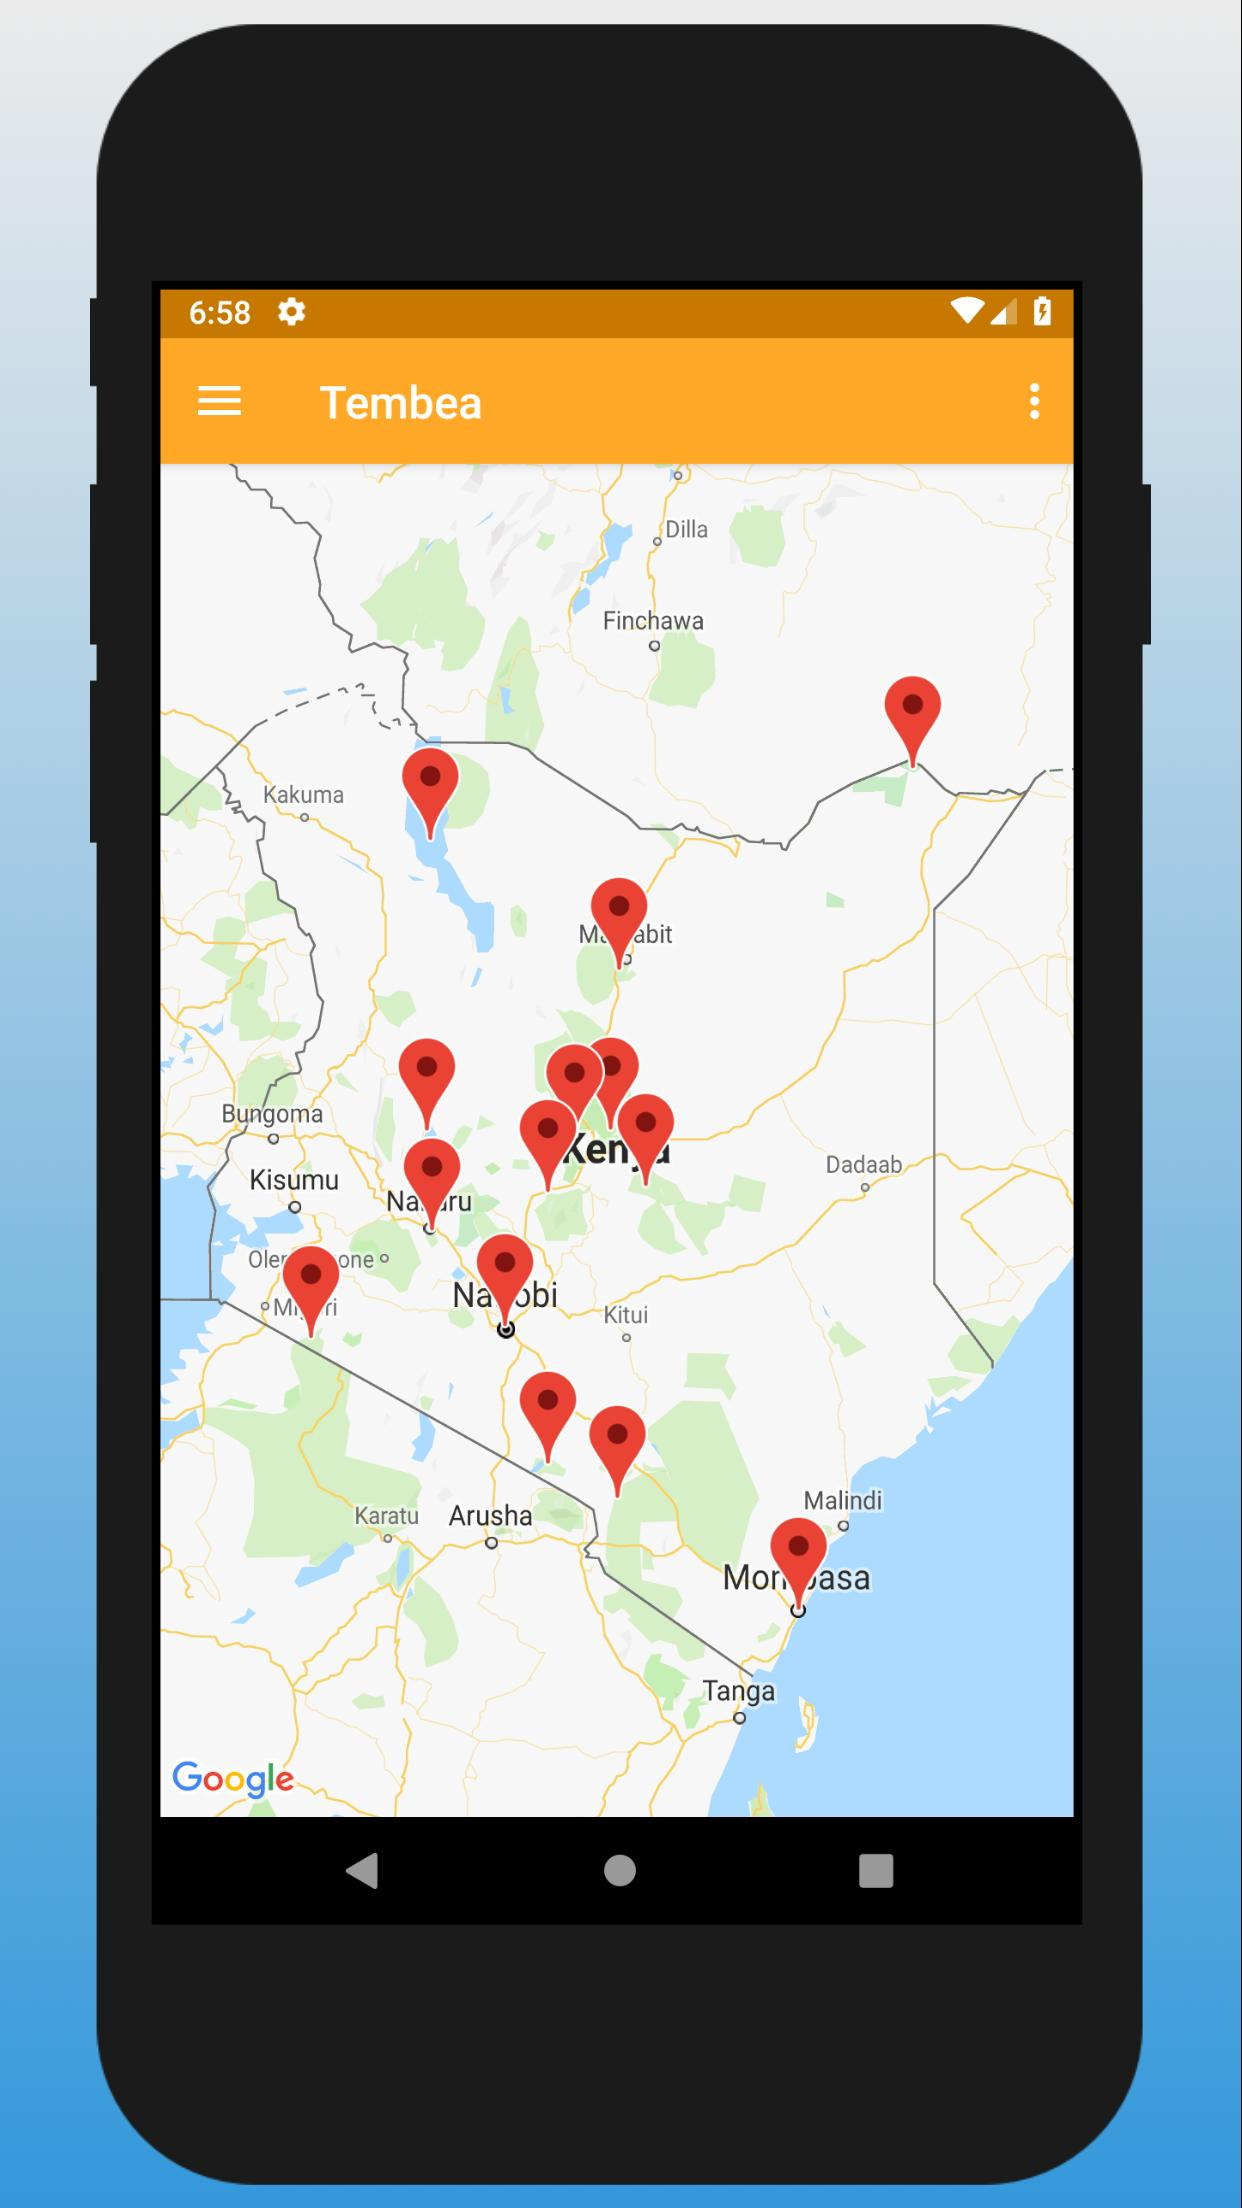 kenyahome Welcome To Astonishing Kenya Home Of Champions For Android